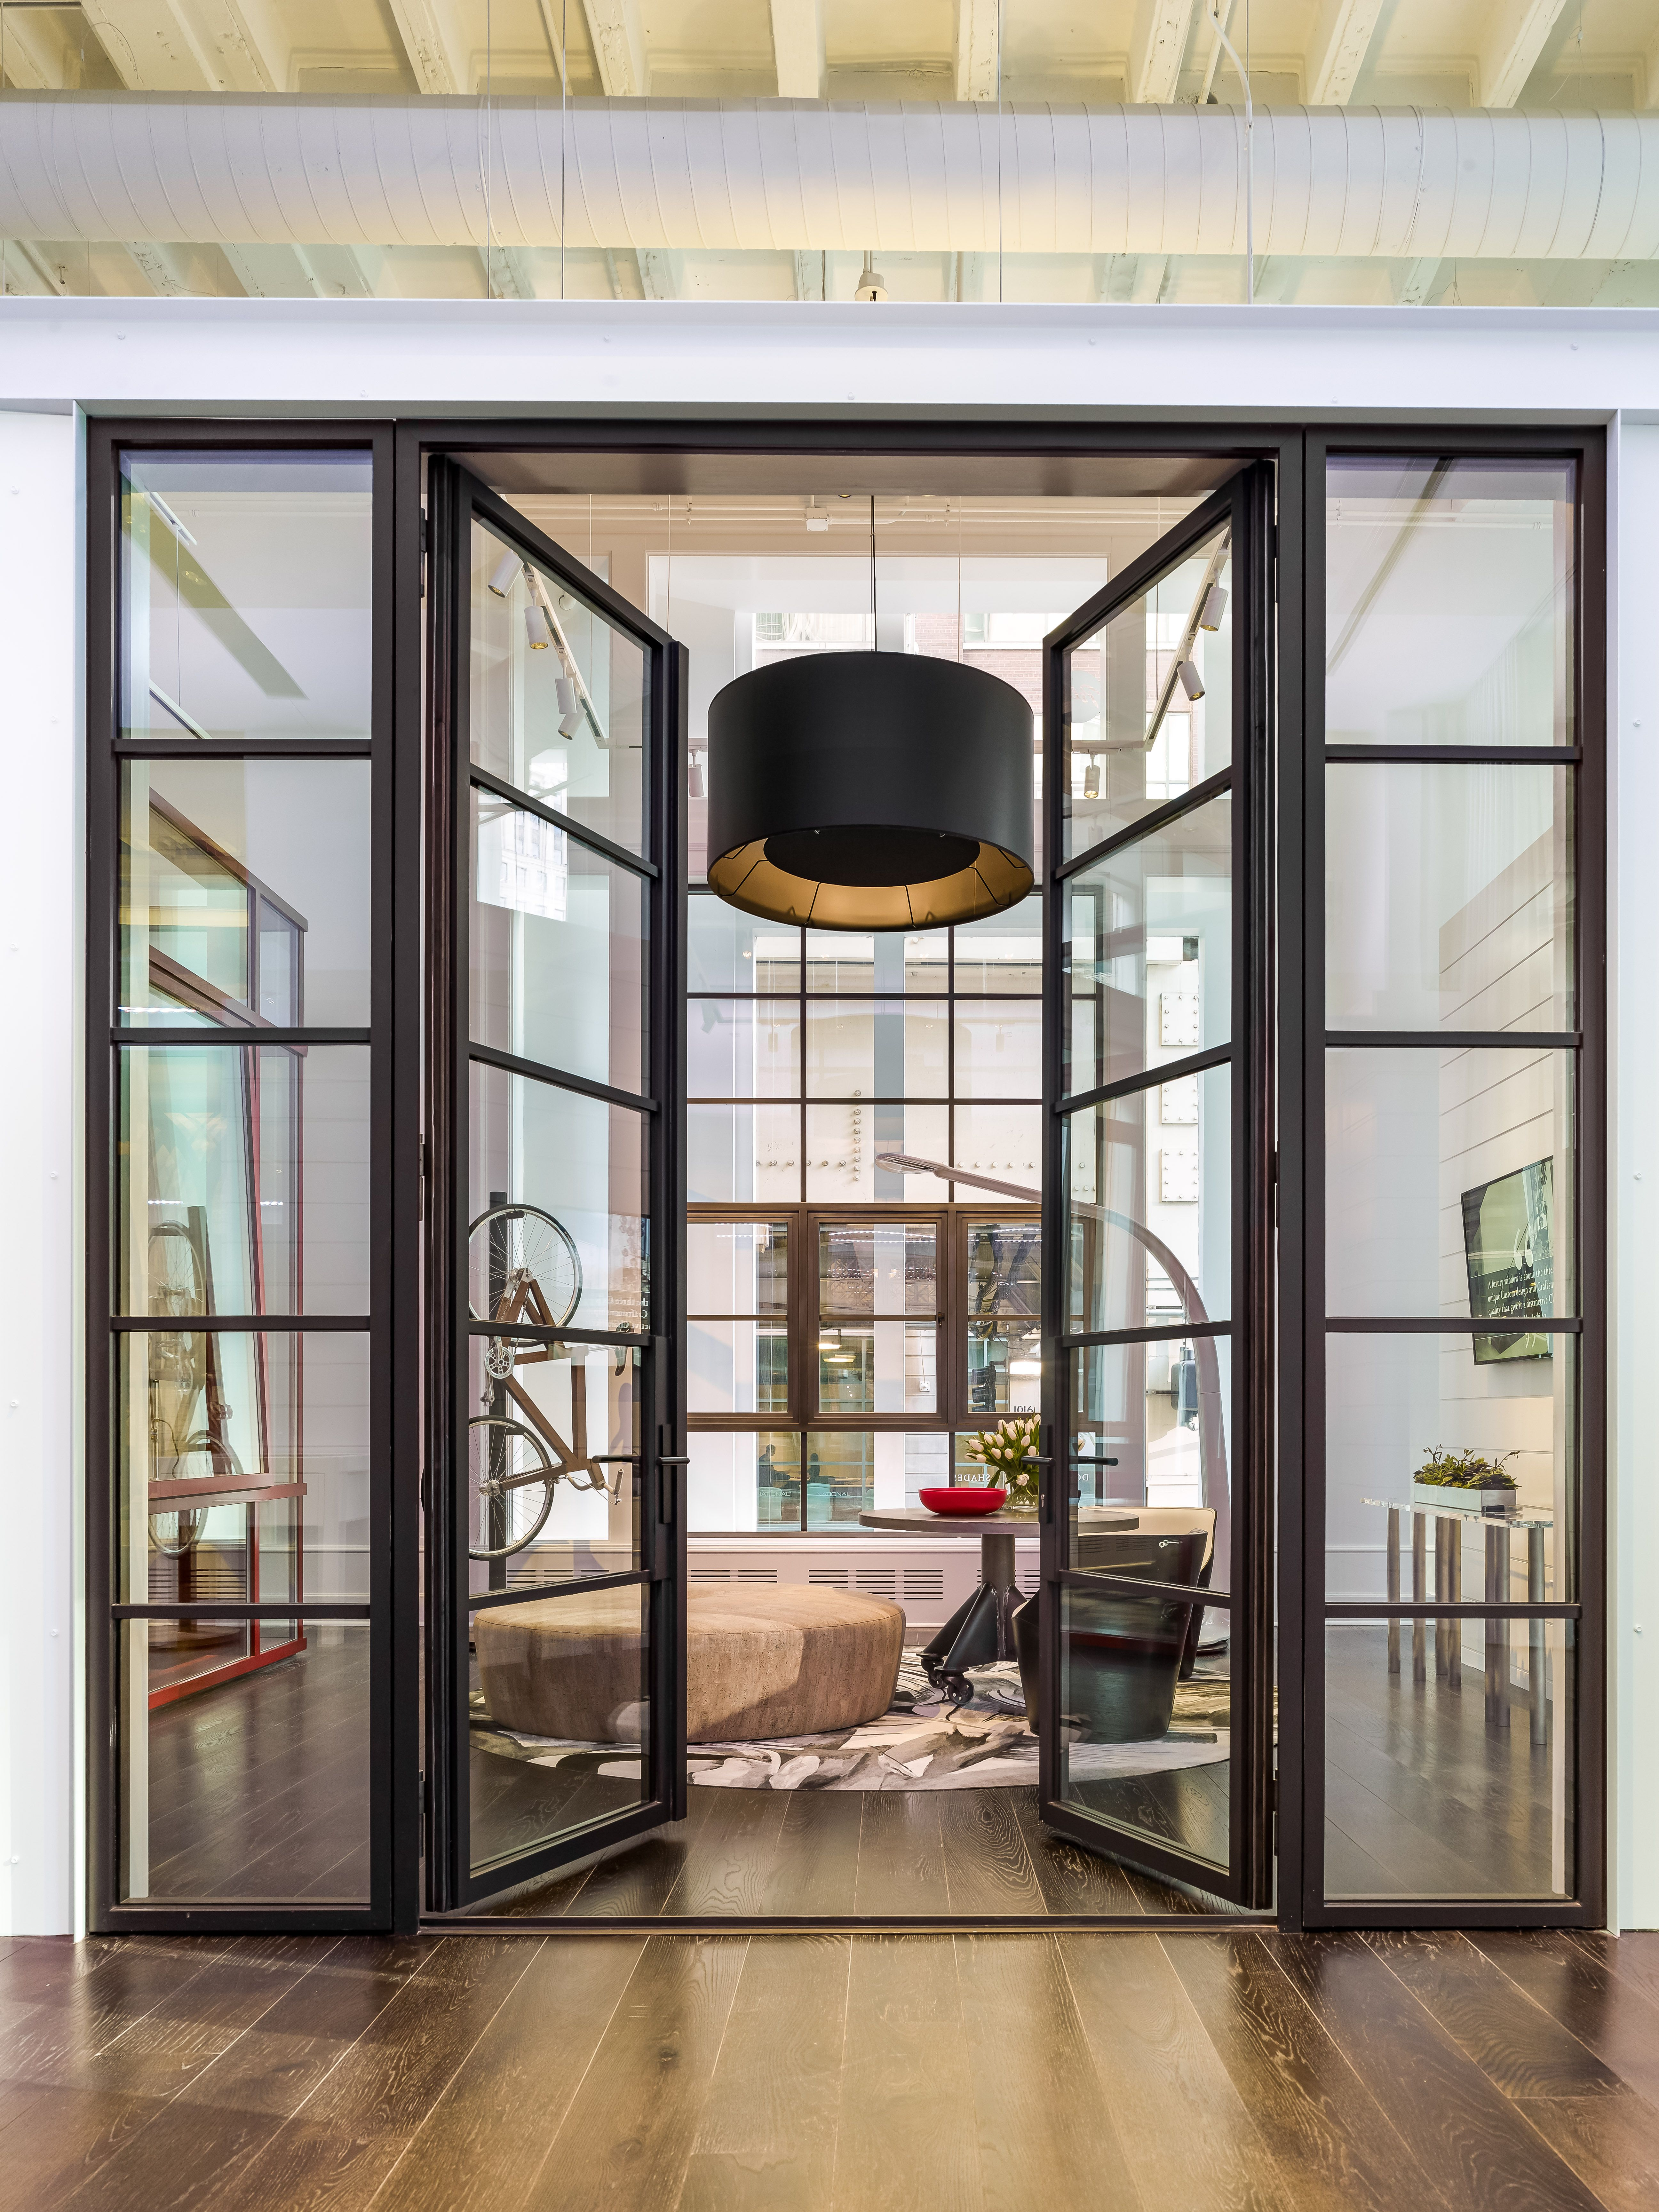 Pella Corporation Offers Personalized Design Solutions For Architects And Designers At New Space In Luxehome Aluminium French Doors Discount Interior Doors French Doors Interior